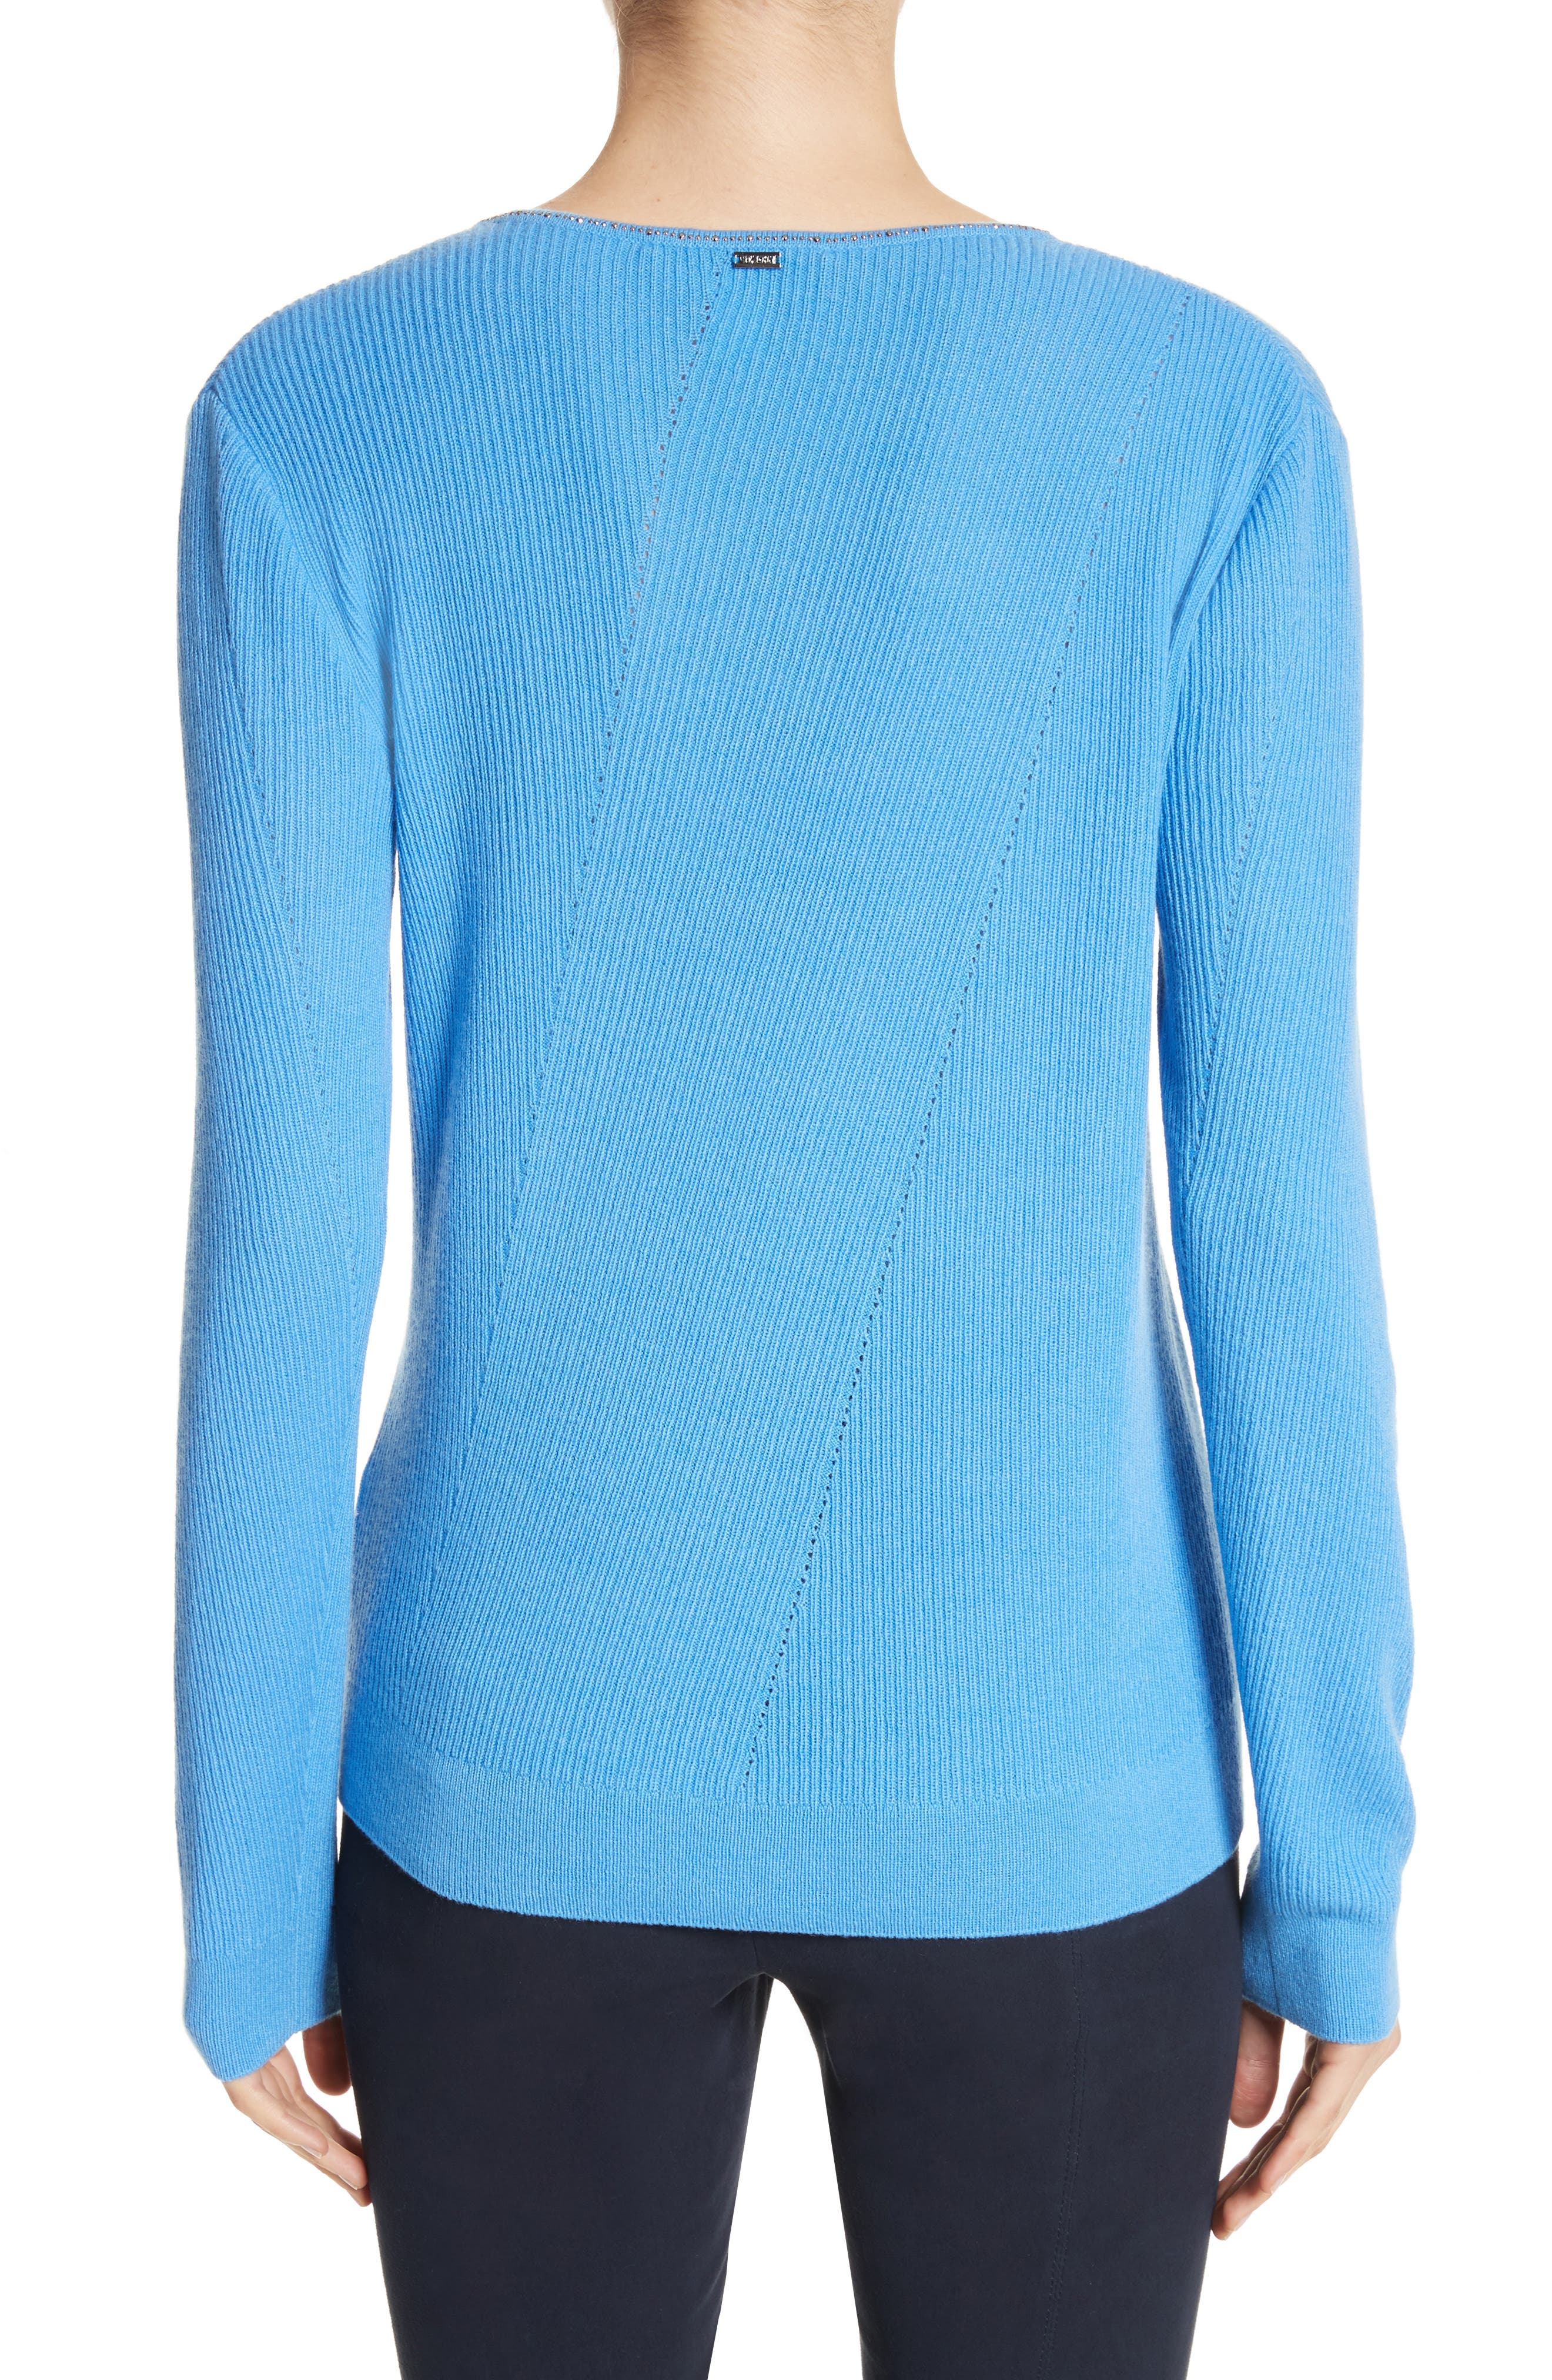 Cashmere Sweater,                             Alternate thumbnail 2, color,                             Bright Niagara